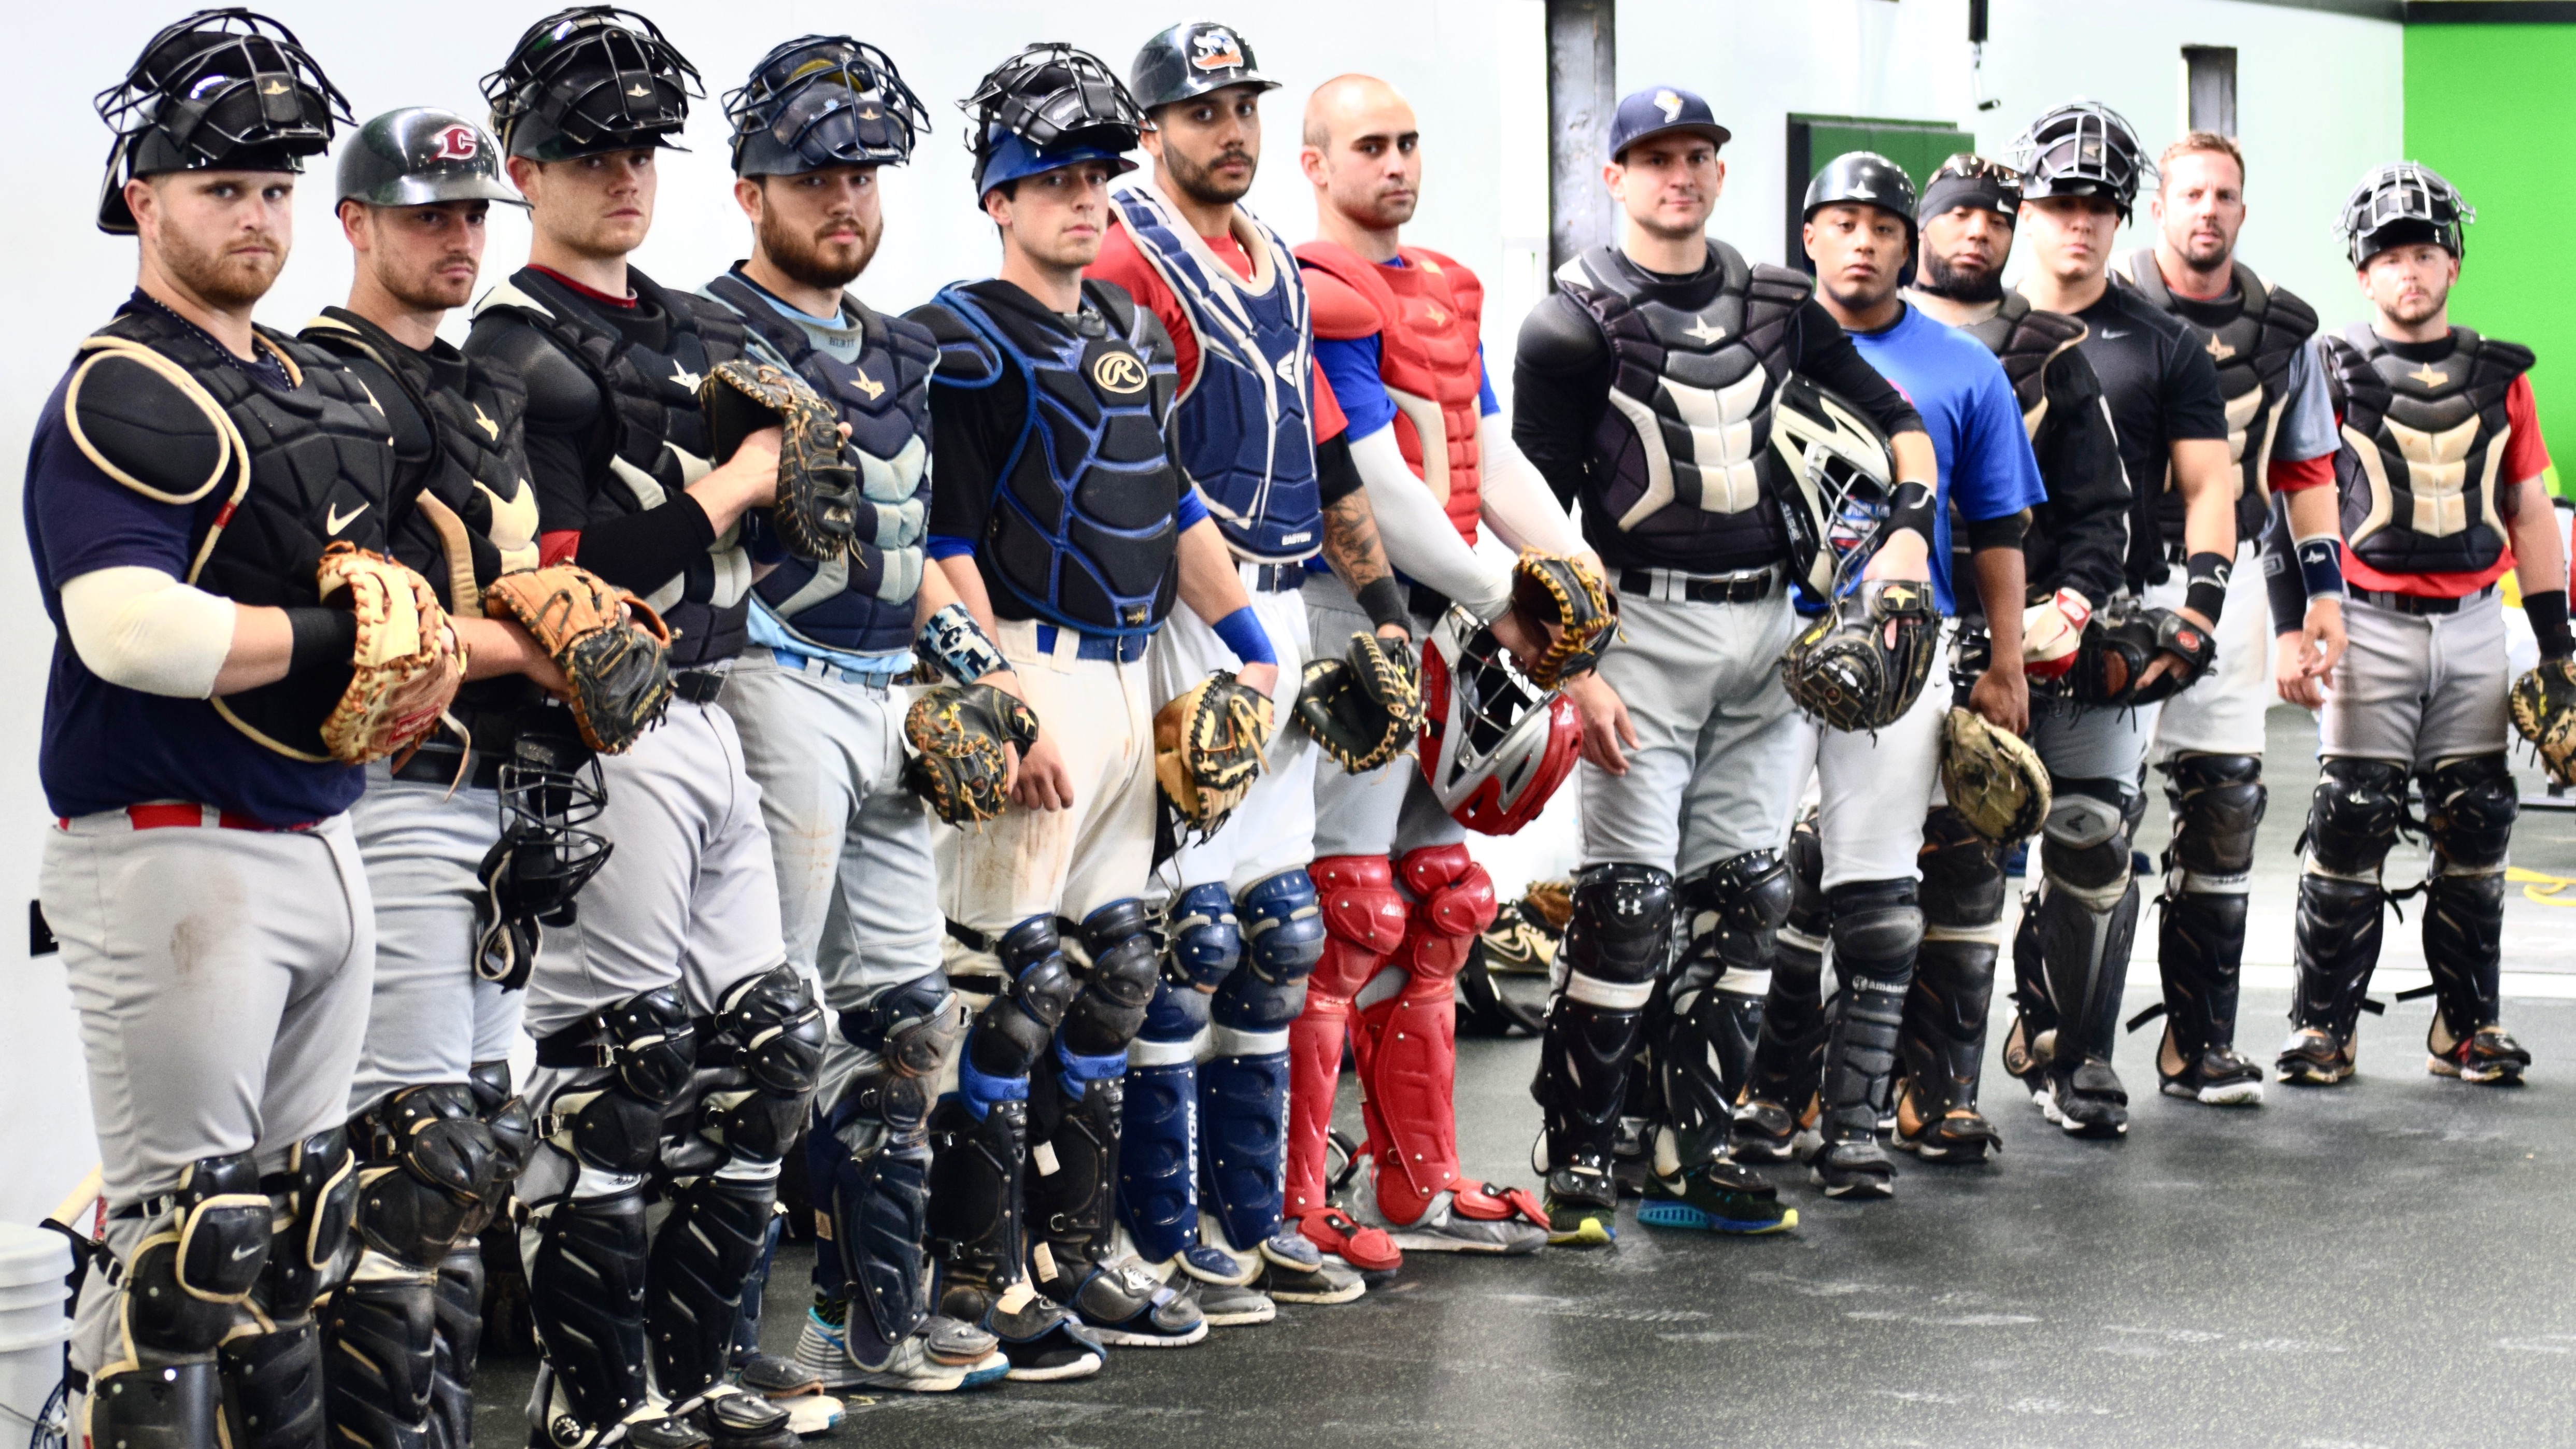 EMPIRE LEAGUE TRYOUT CAMPS ANNOUNCED